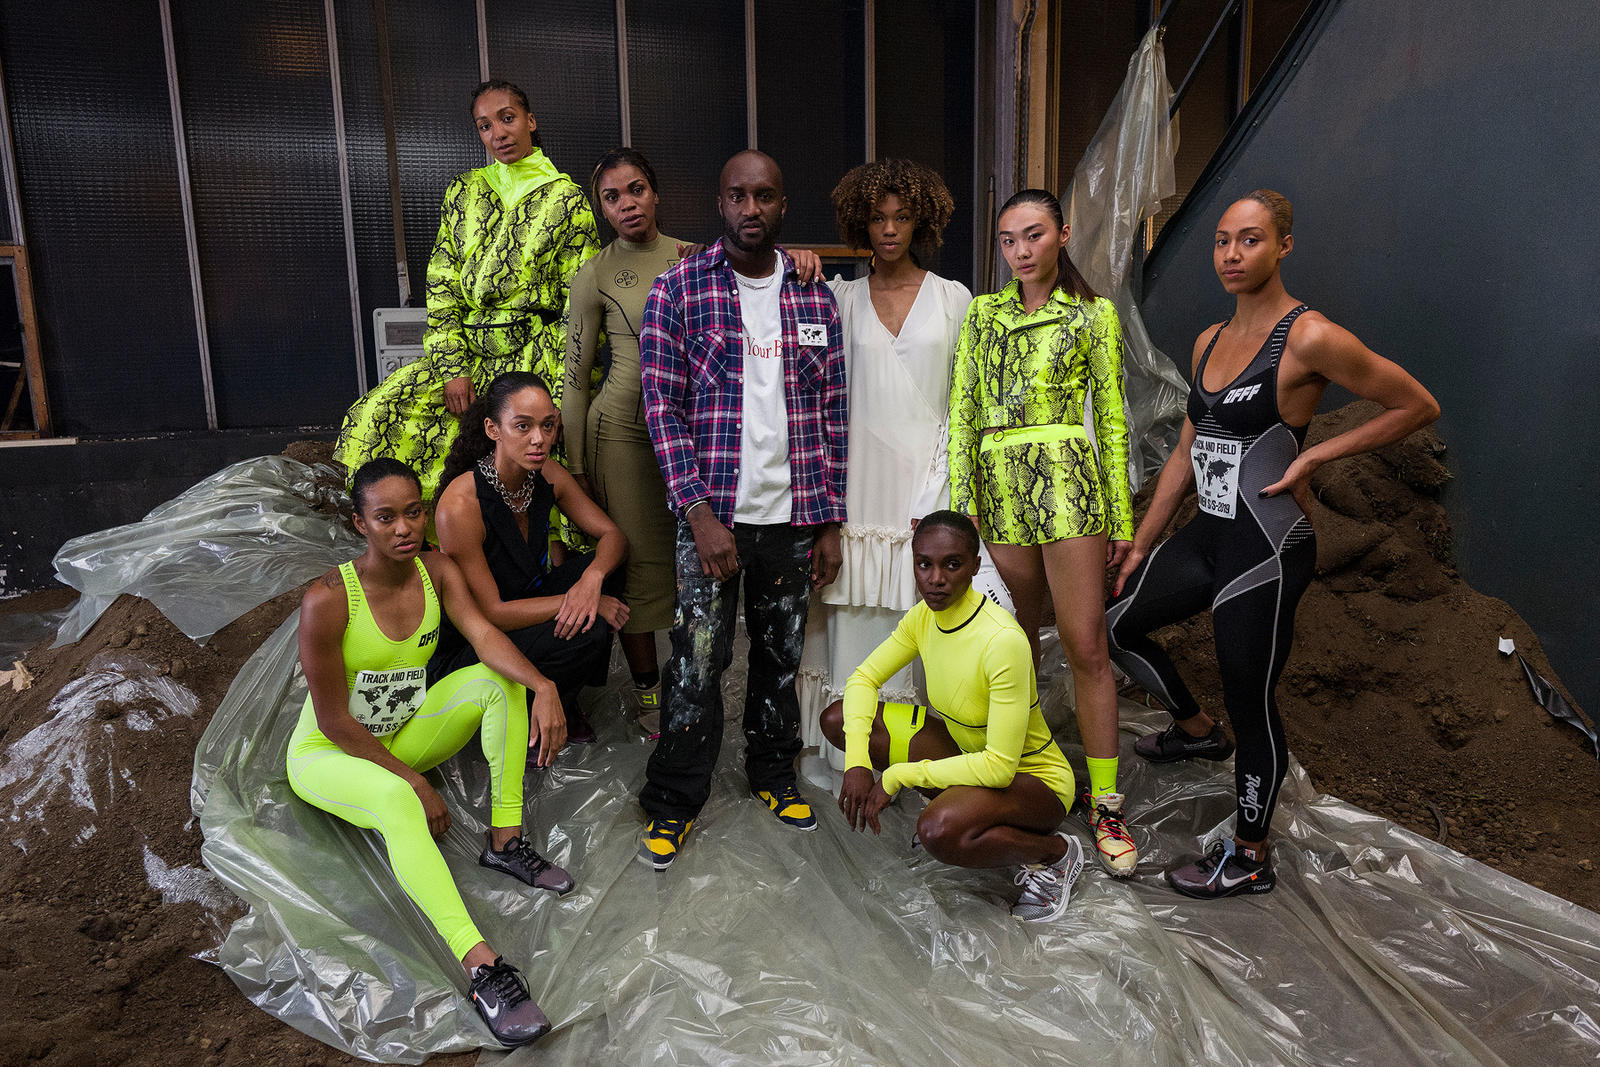 Nike and Virgil Abloh Debut New Track and Field-Inspired Designs in Paris 0